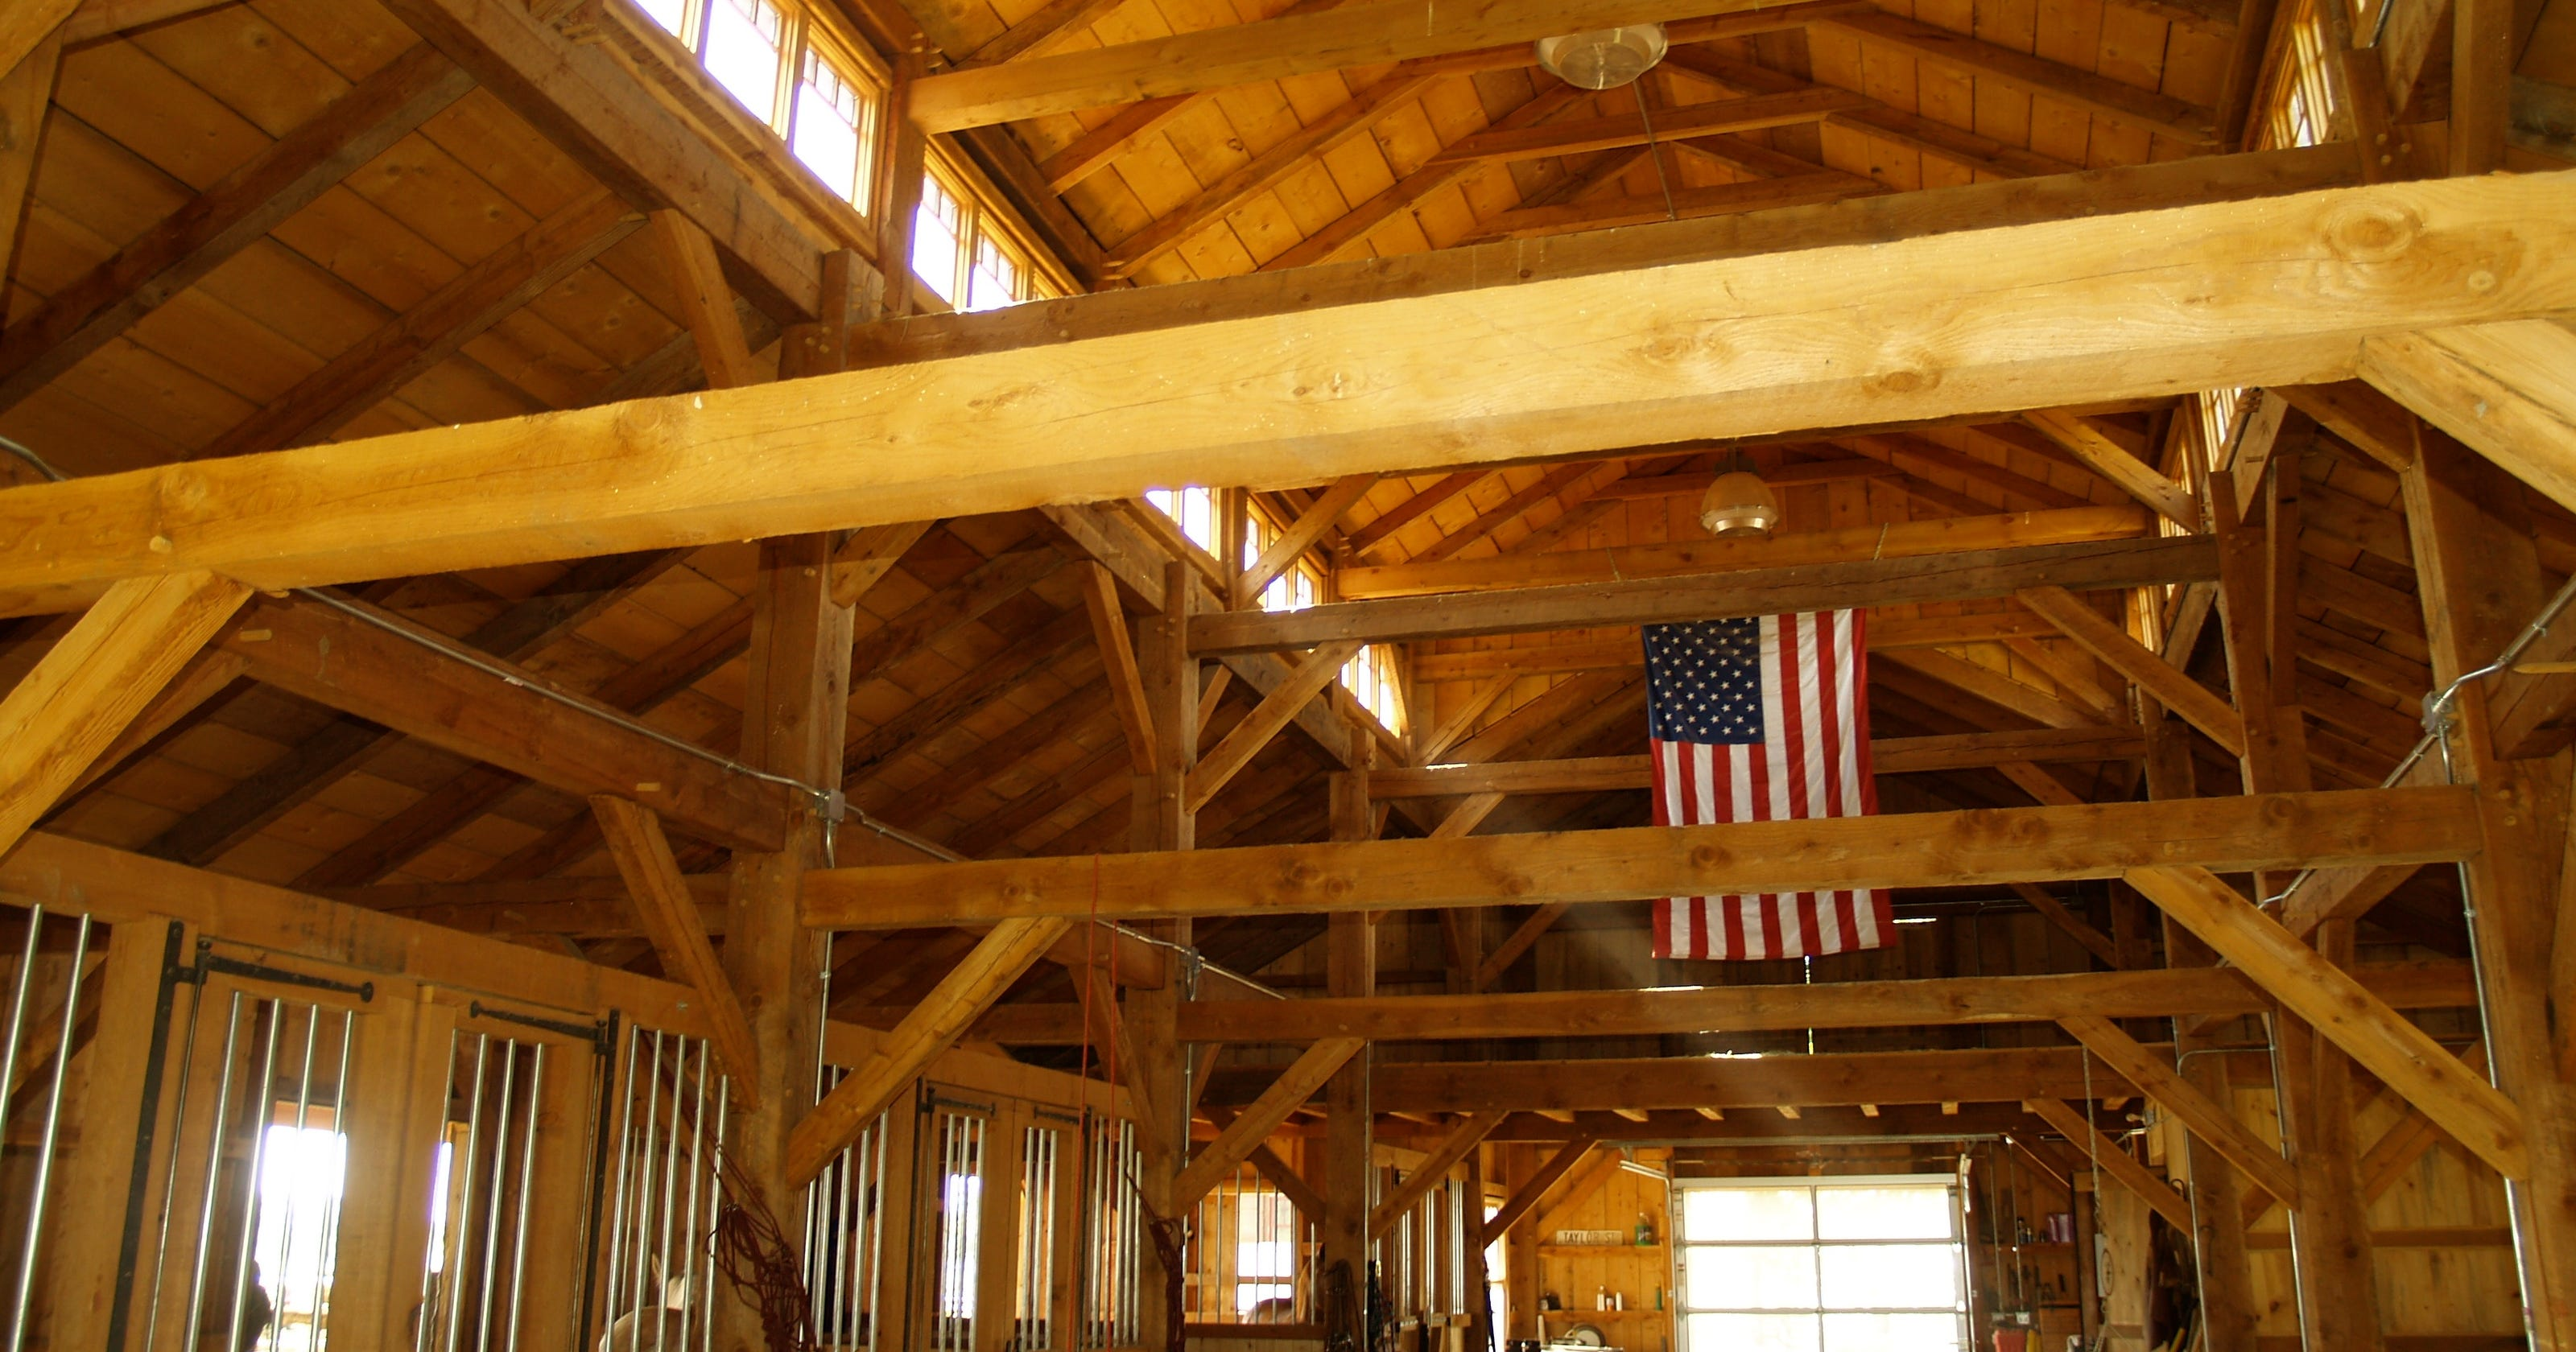 Move over million-dollar mansions, timber-frame homes can be cost